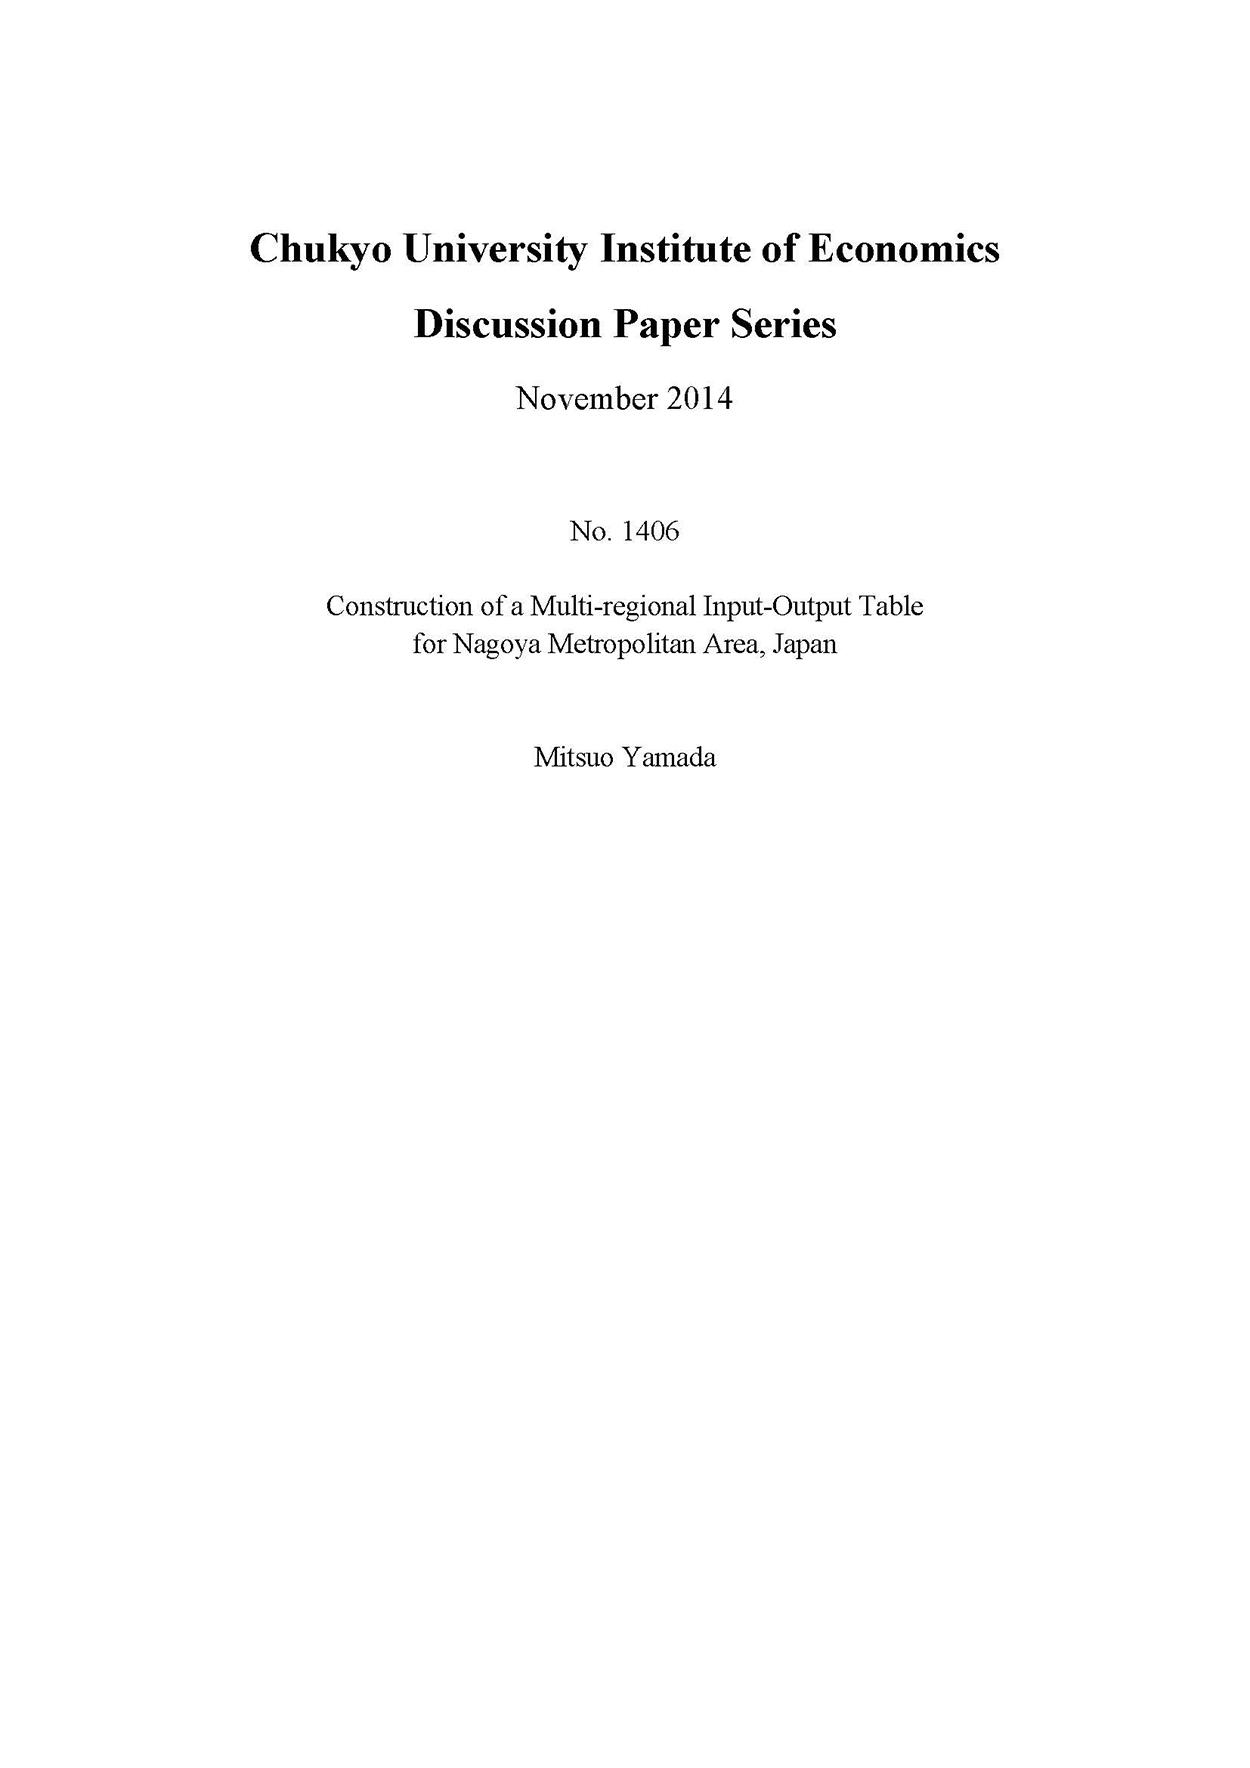 Discussion Paper Series No.1406